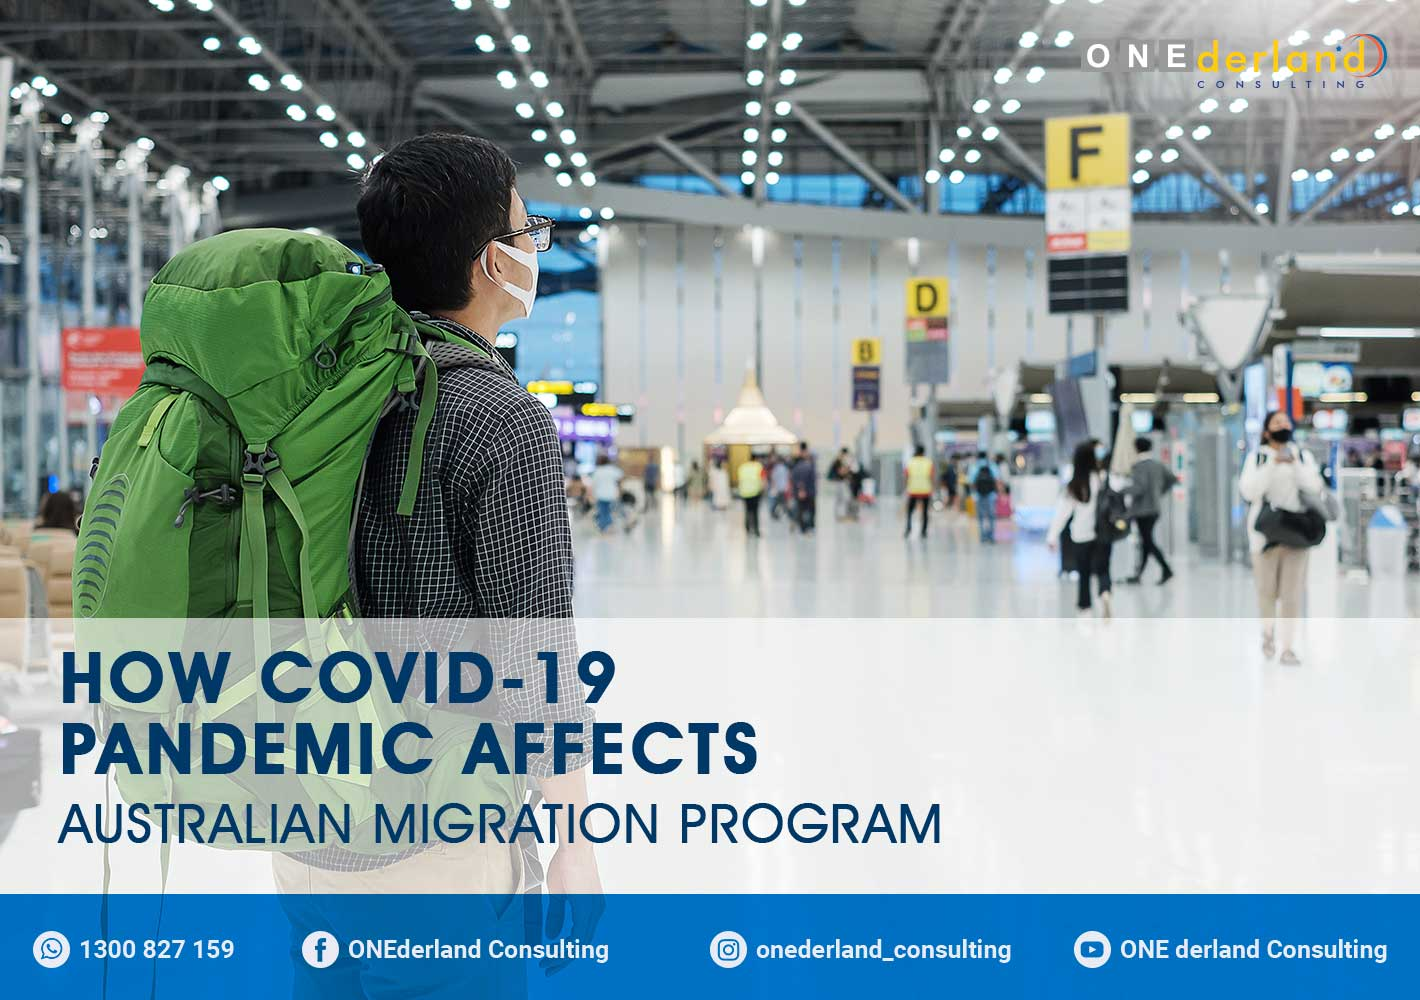 Australian Migration Application During COVID-19 Pandemic